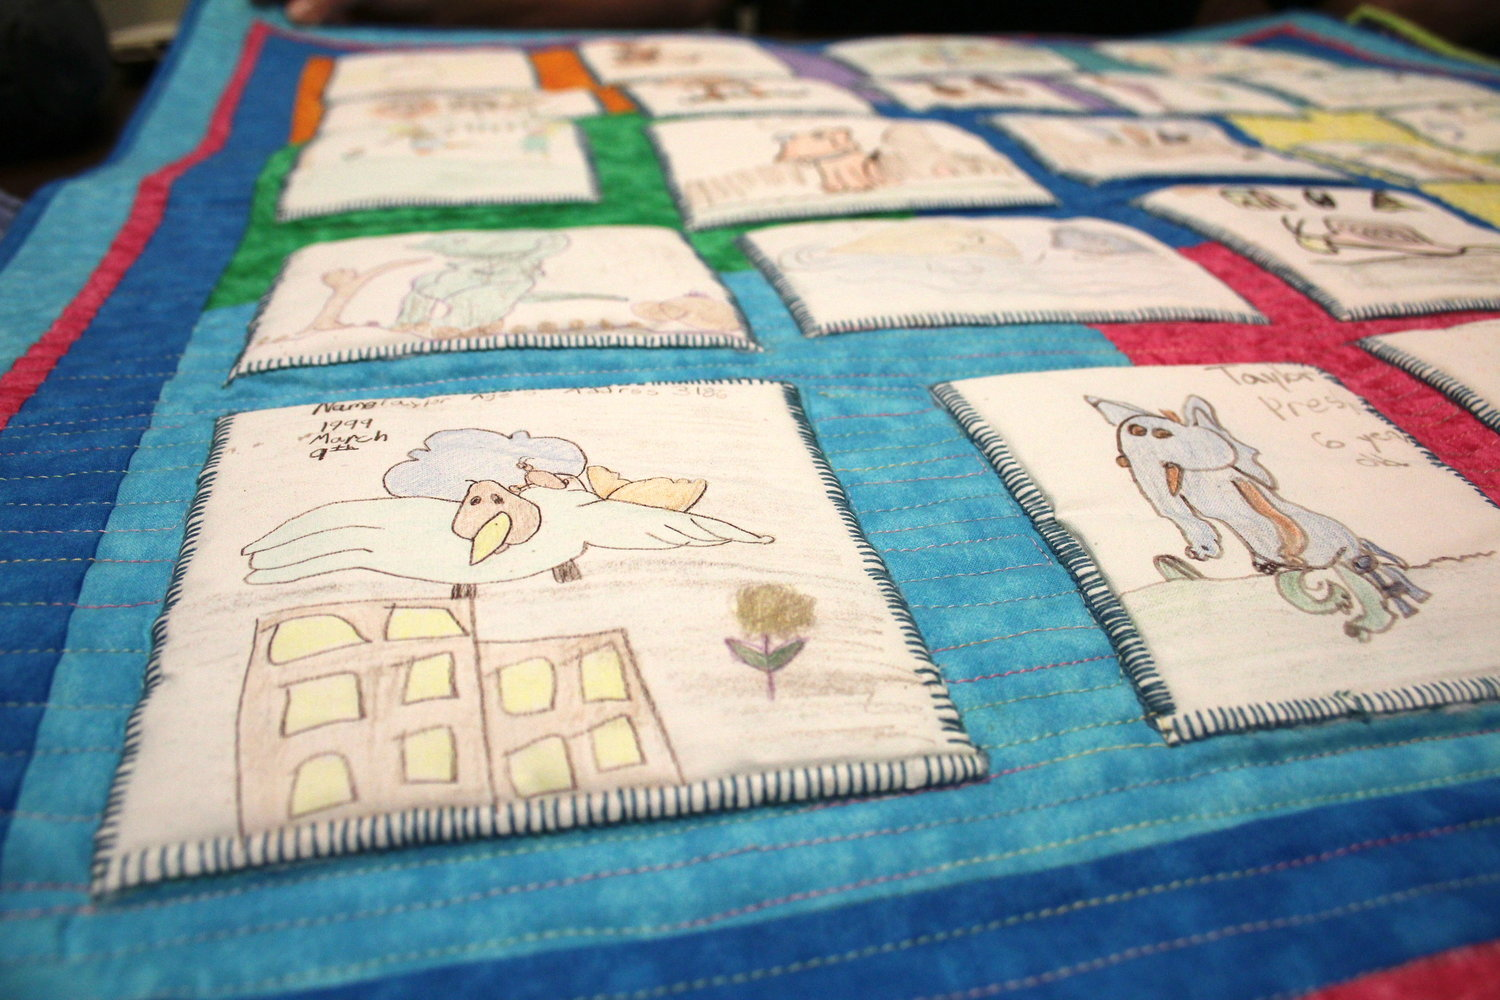 """TAYLOR'S PAPPYLAND ARTWORK"" is a memory quilt sewn by Sandra Presley that consists of doodles and pictures her daughter, Taylor, now 26 years old, drew as she watched the show ""Pappyland"" when she was younger."